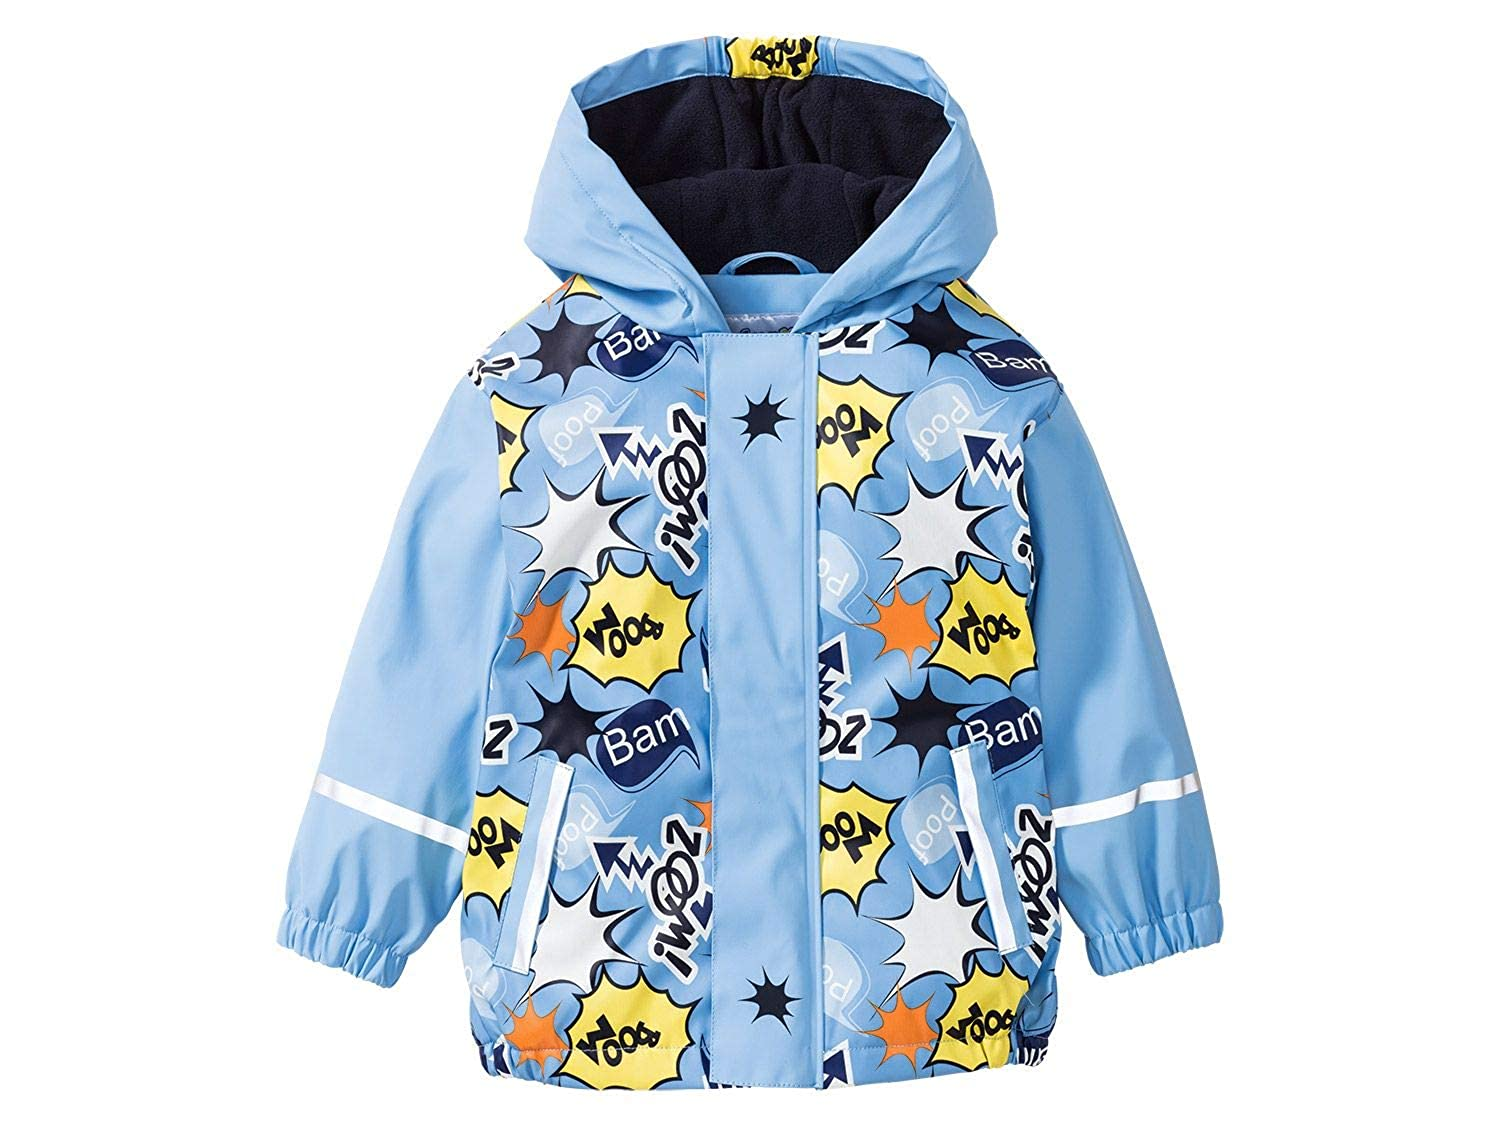 DAYU Boys Waterproof Hooded Jackets Fleece Lined Rain Jackets DAYU INC.